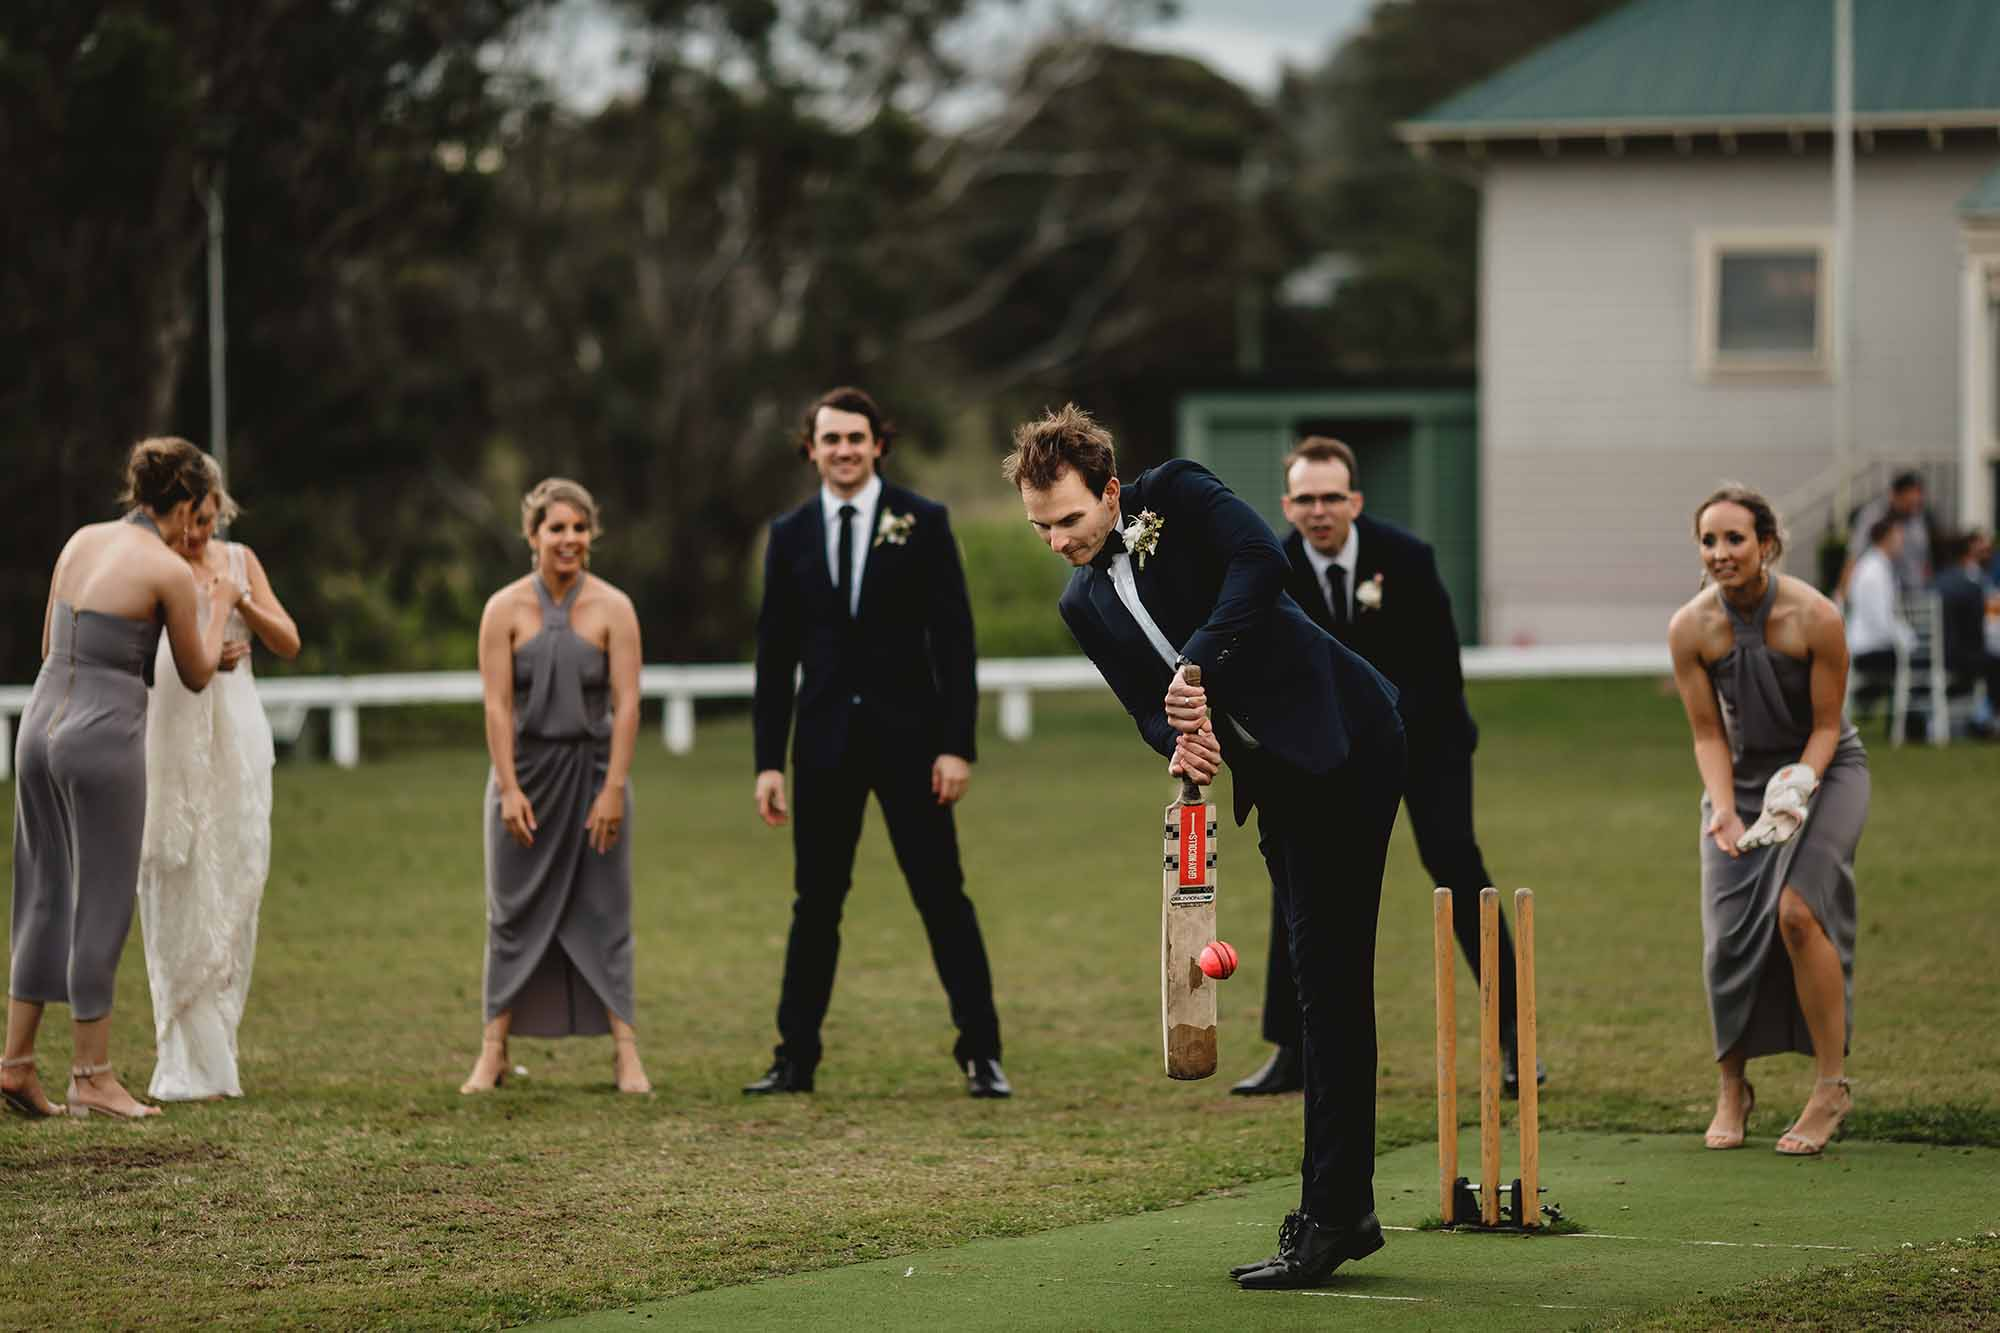 wandin wedding cricket match